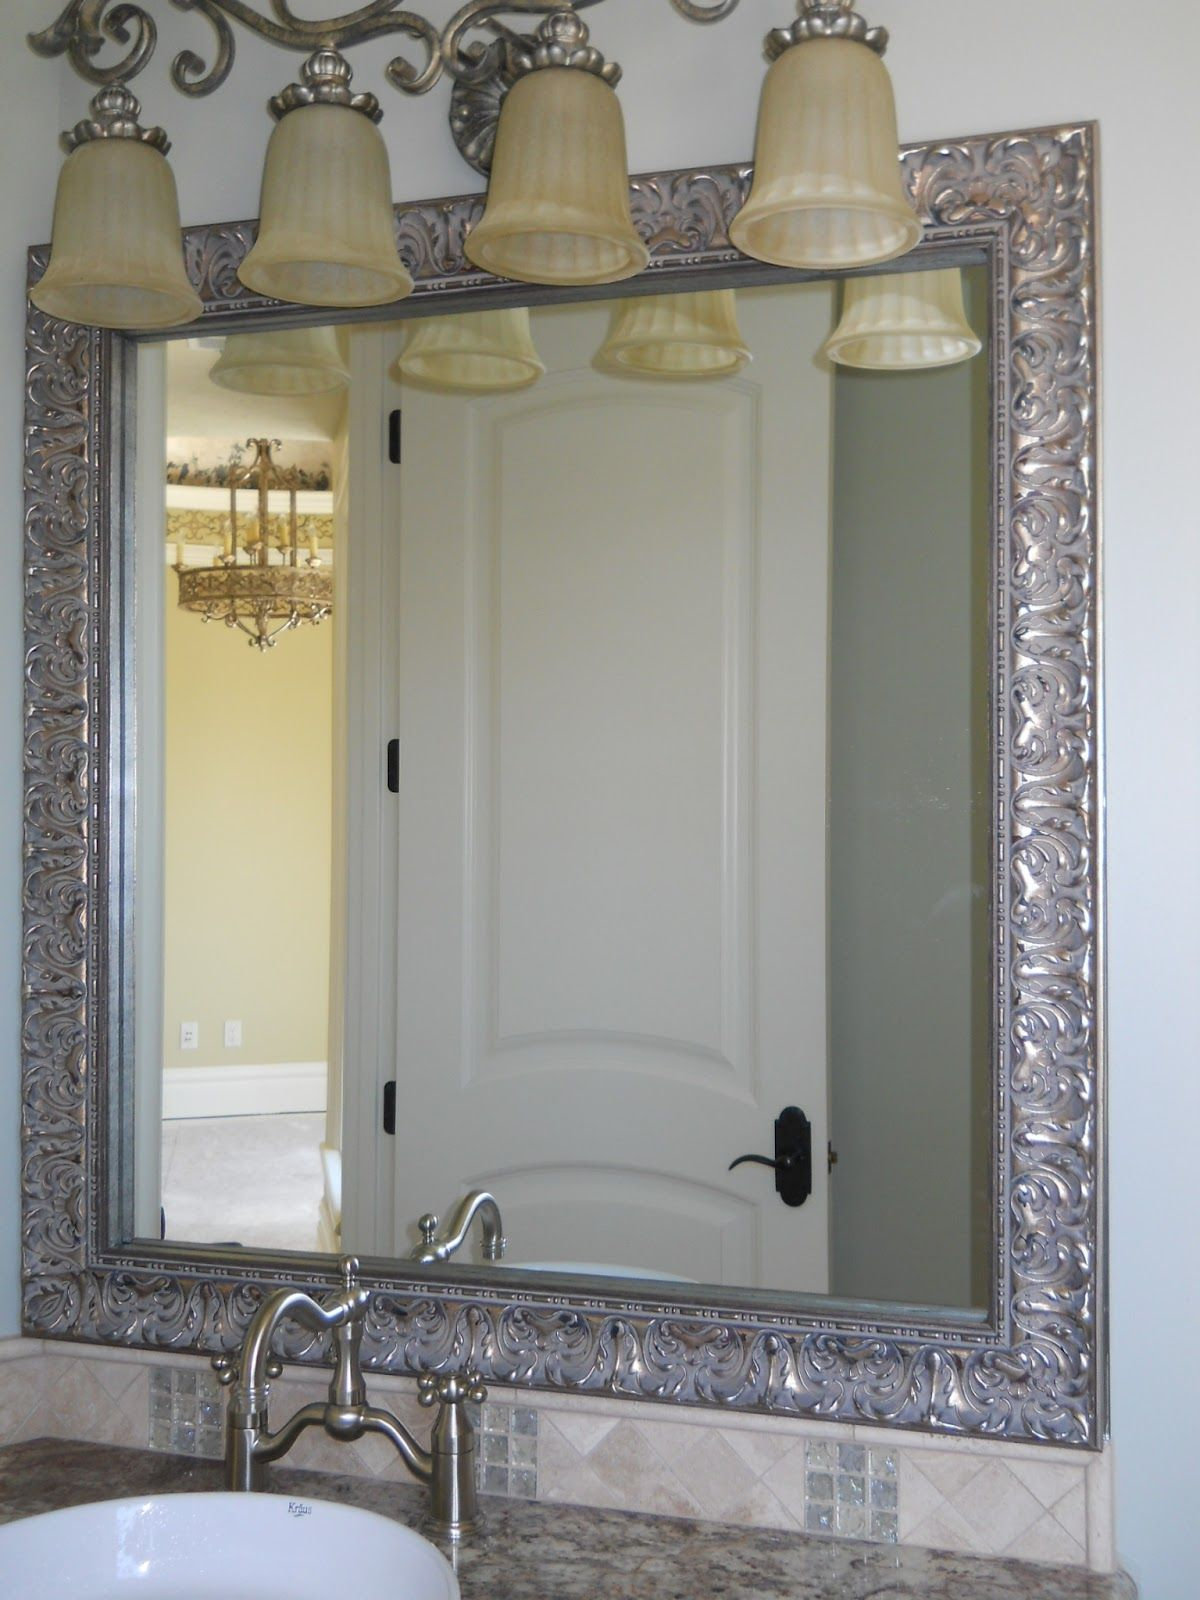 Mirror Frame Kit : Reflected Design, Custom Mirror Frame Kits   Bathroom  Mirror Kits